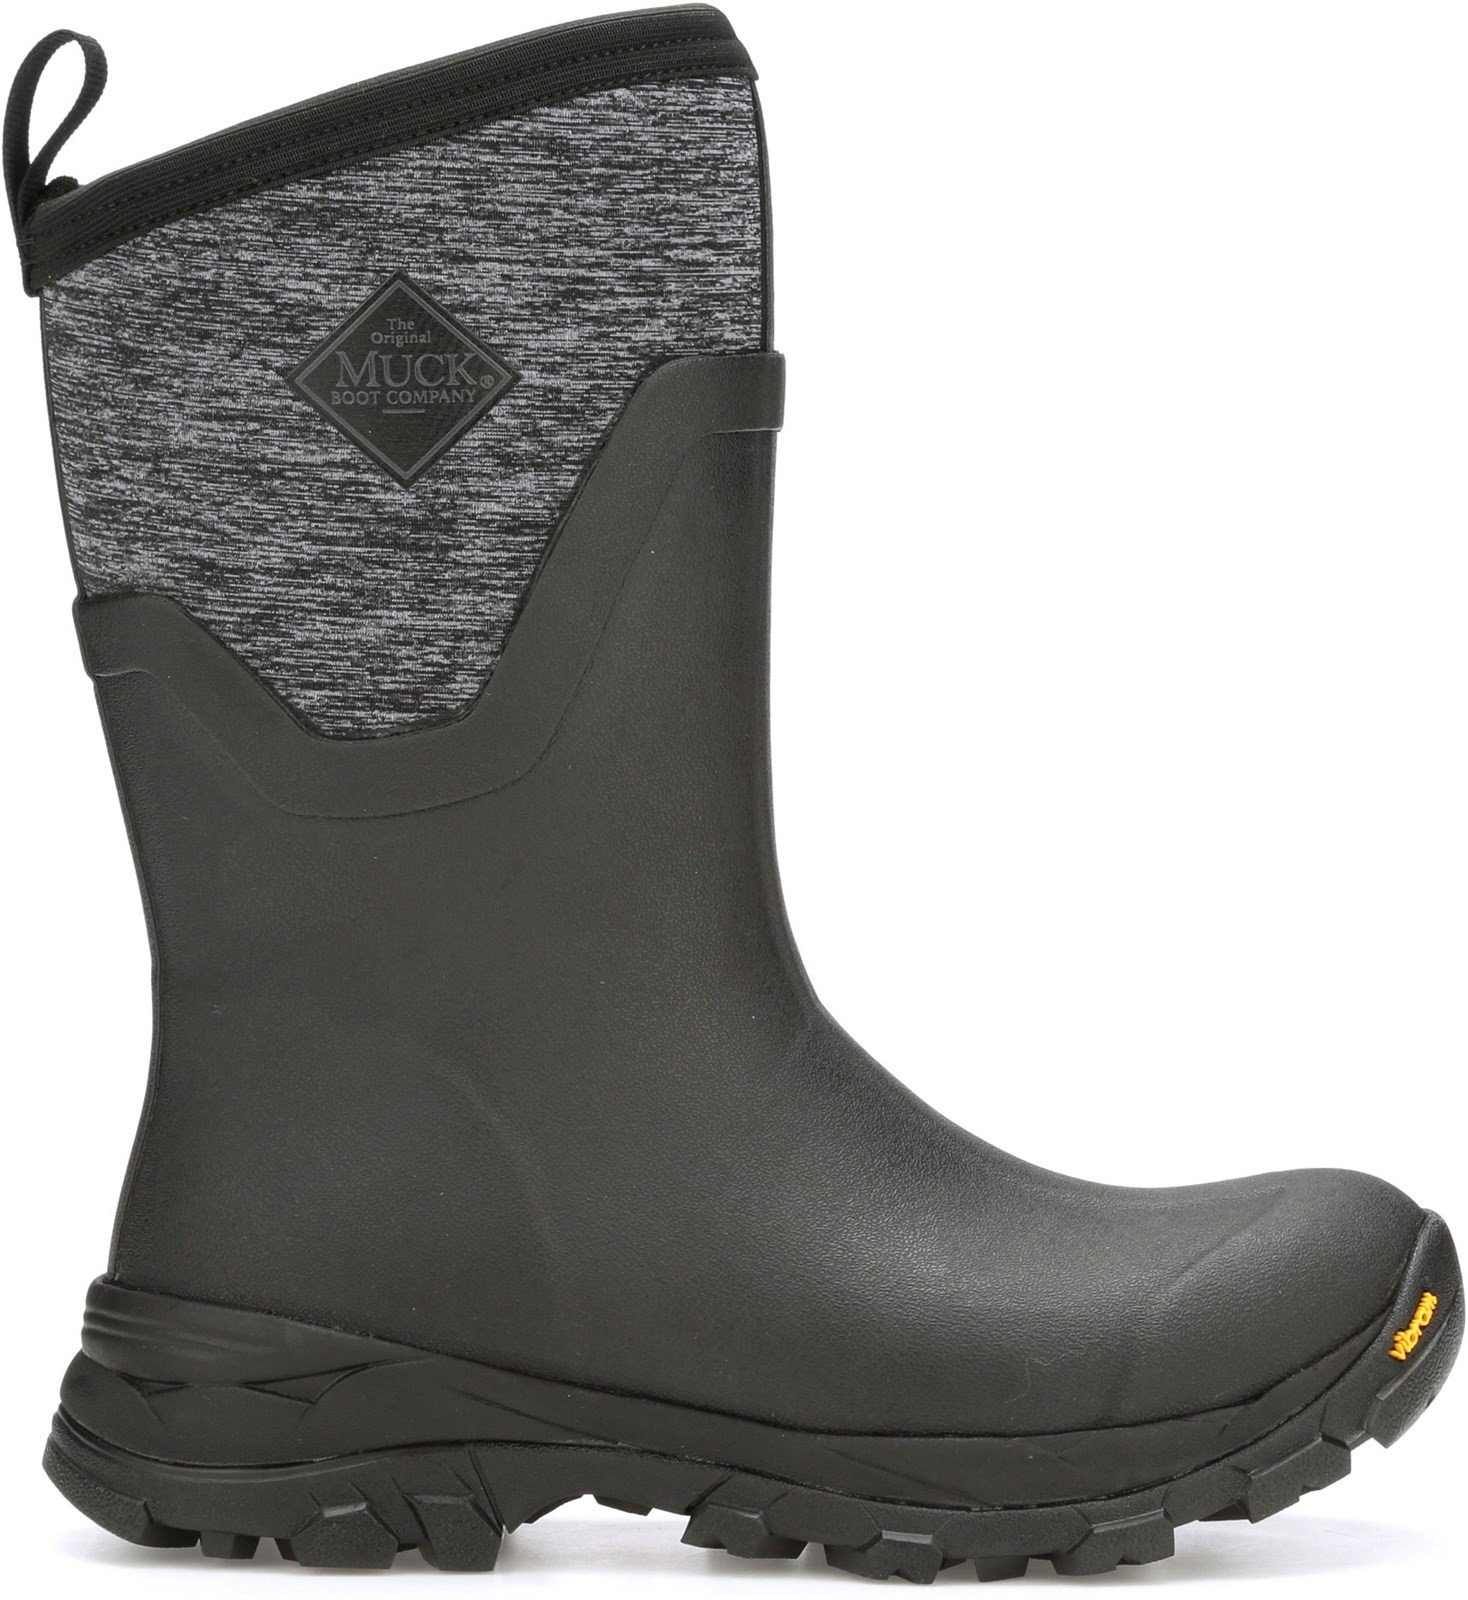 Muck Boots Unisex Arctic Ice Mid Boot Various Colours 27615 - Black/Heather Jersey 3